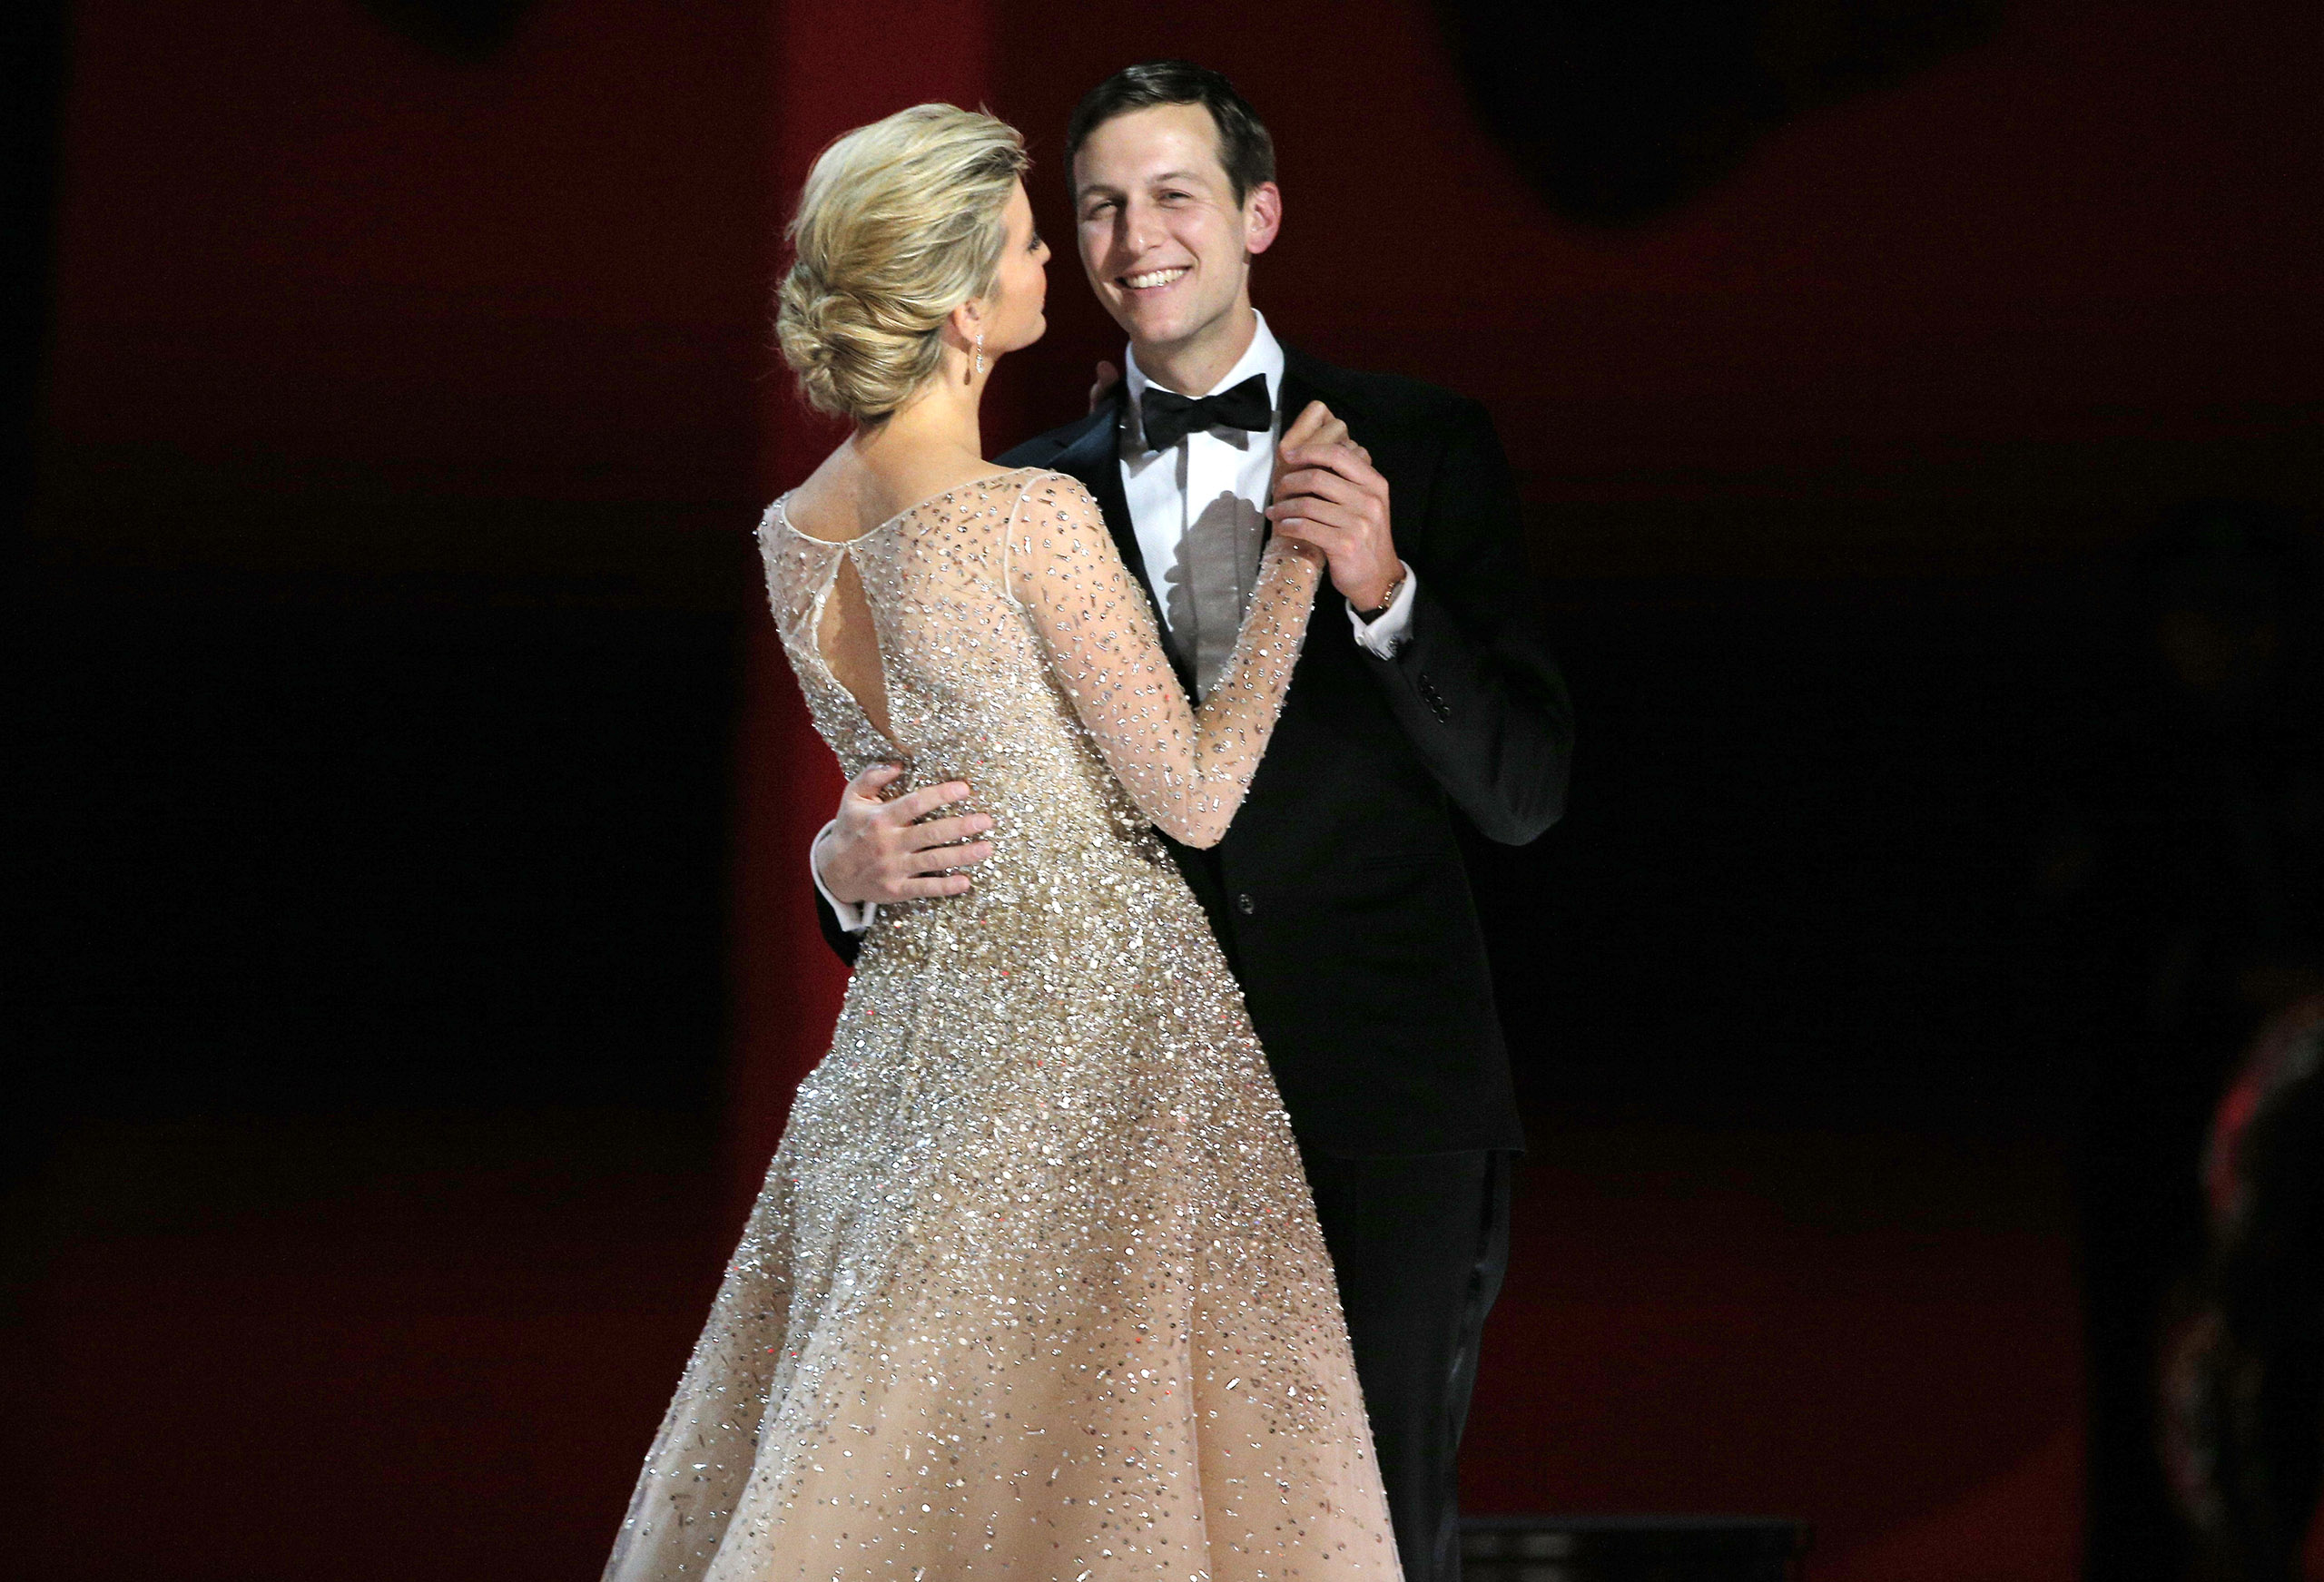 Jared Kushner dances with his wife Ivanka Trump at  U.S. President Donald Trump's  Liberty  Inaugural Ball in Washington, D.C., Jan. 20, 2016.